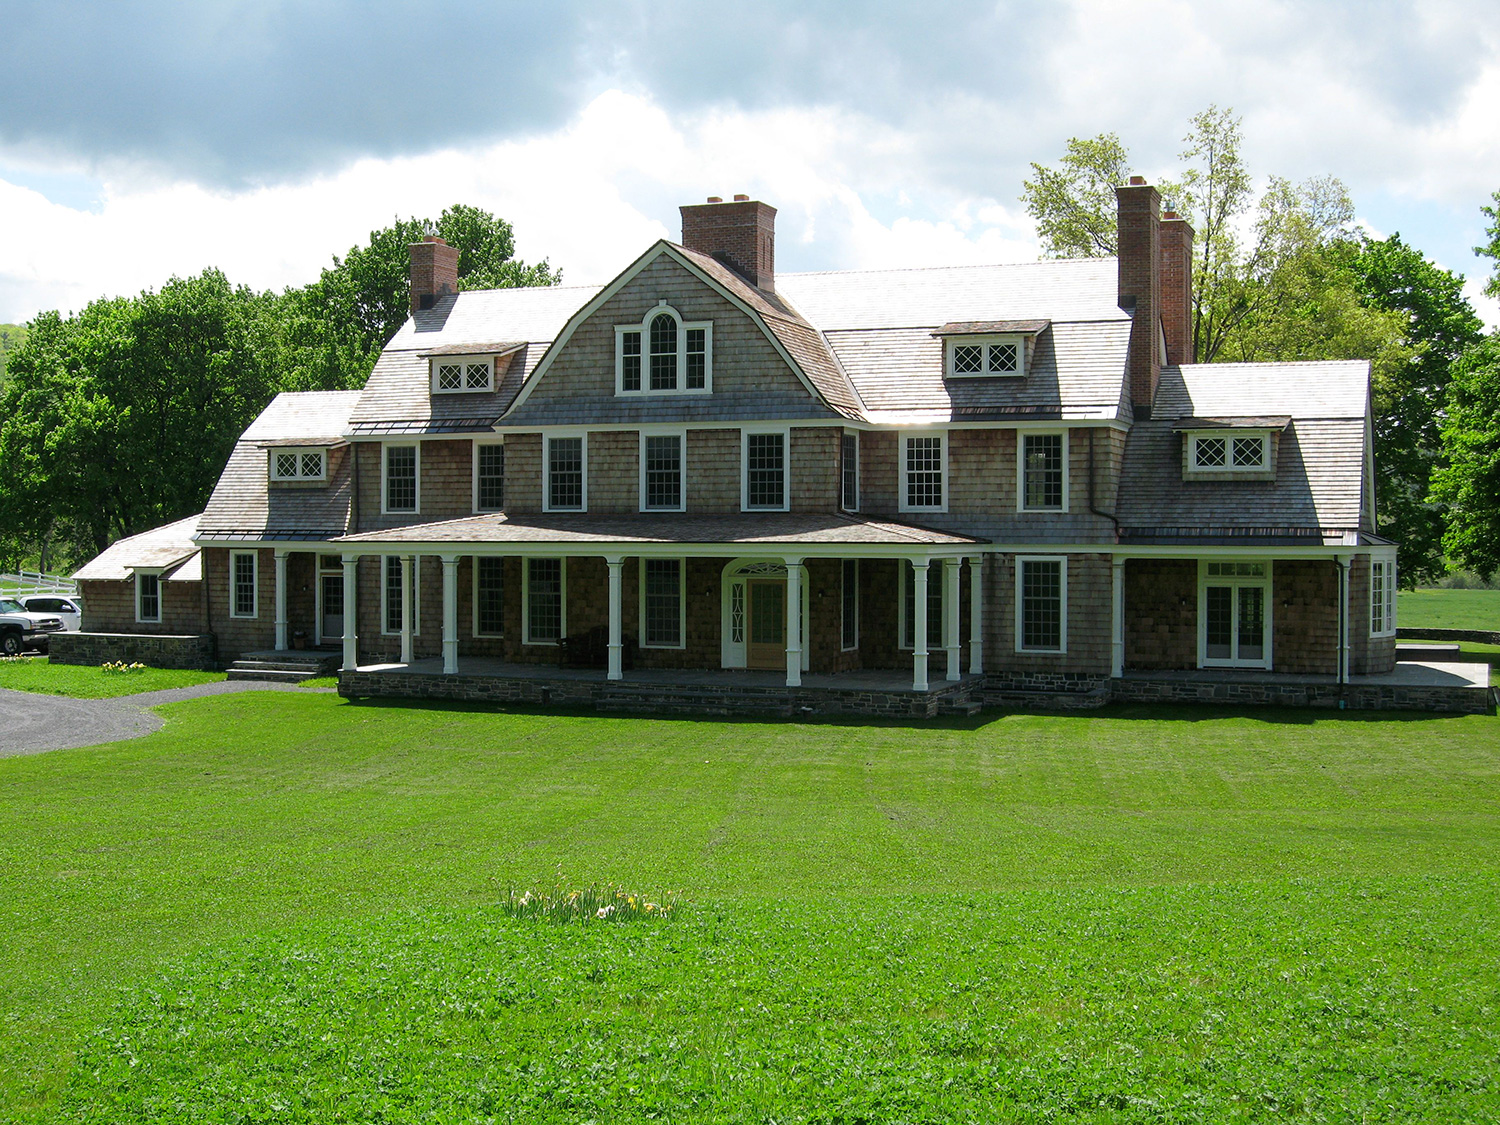 Gambrel Shingle Estate in color. Hillsdale, NY.